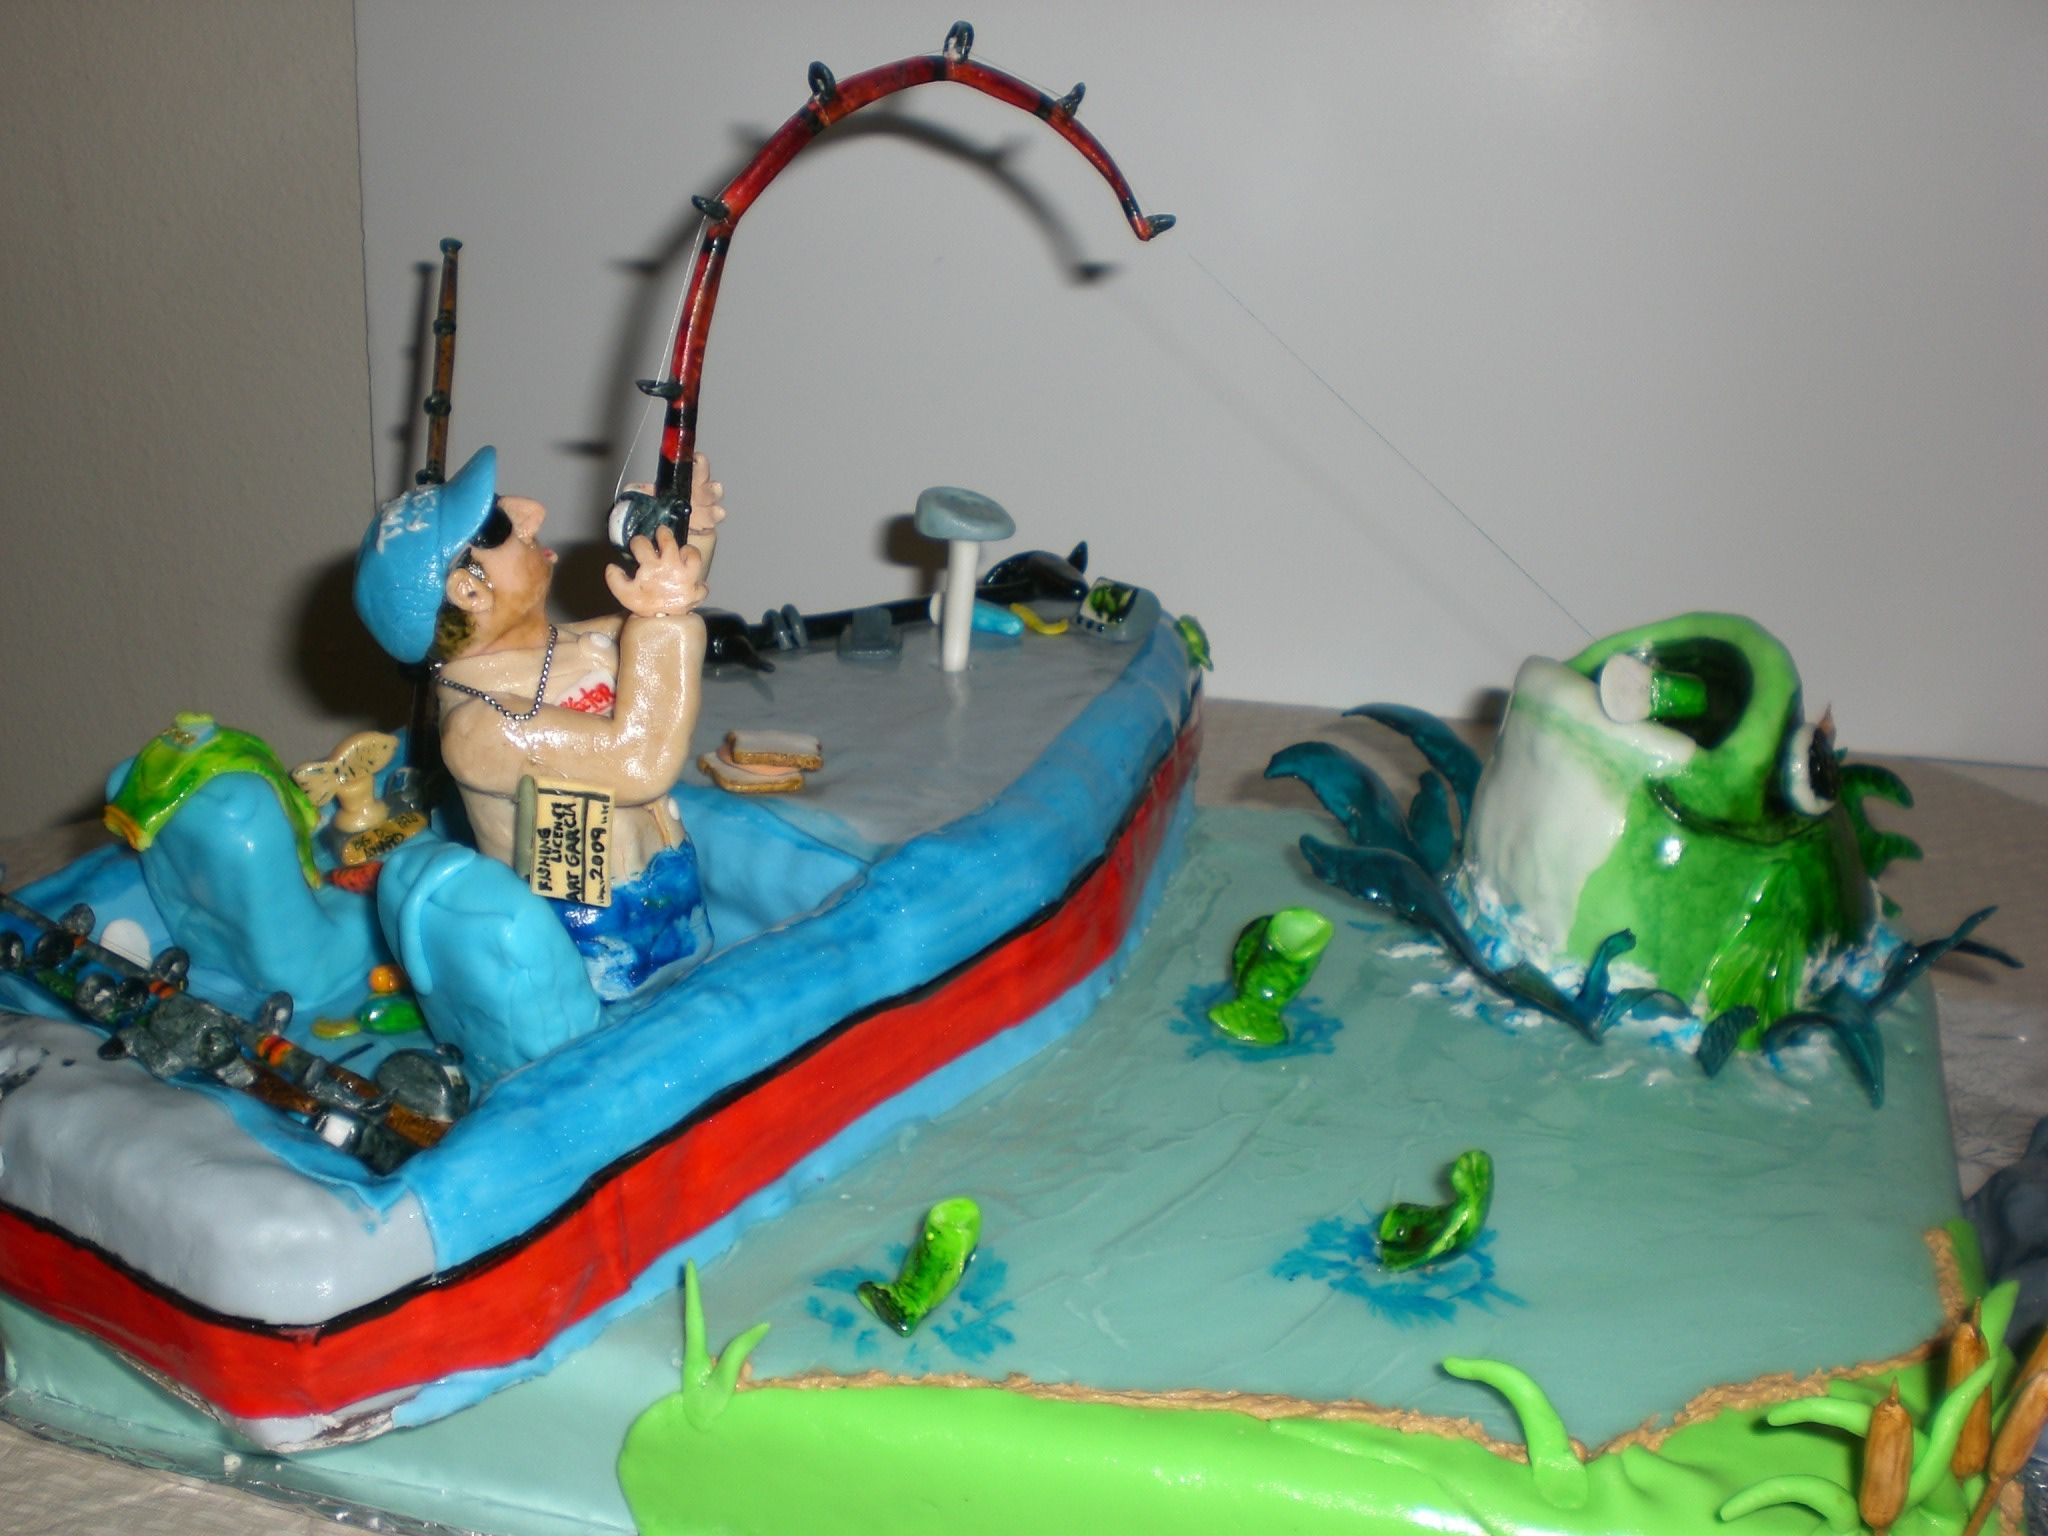 Bass Boat A Suprise For My Dads Th Birthday He Is A True Bass - Fishing boat birthday cake